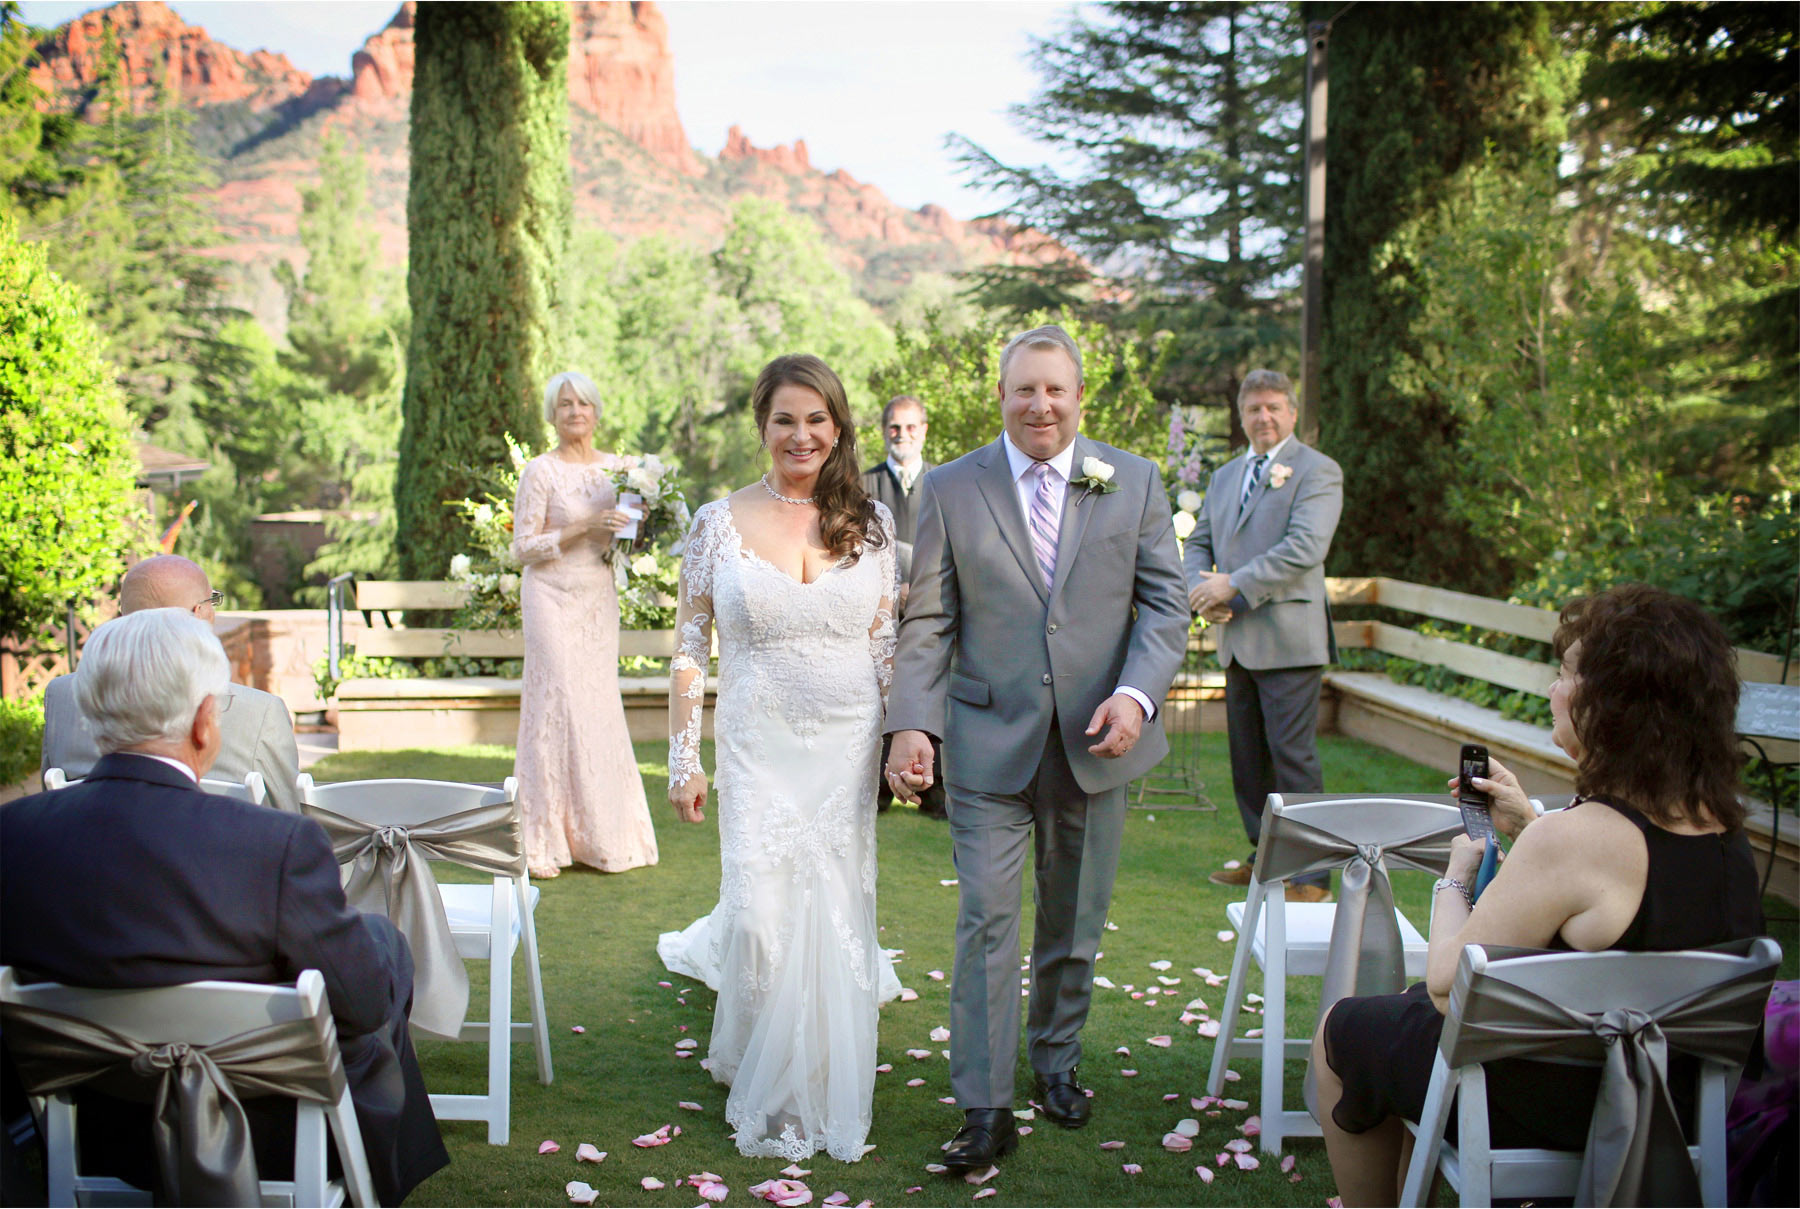 19-Sedona-Arizona-Wedding-Photographer-by-Andrew-Vick-Photography-Spring--LAuberge-de-Sedona-Resort-Ceremony-Garden-Lawn-Bride-Groom-Recessional-Barbara-and-Mike.jpg